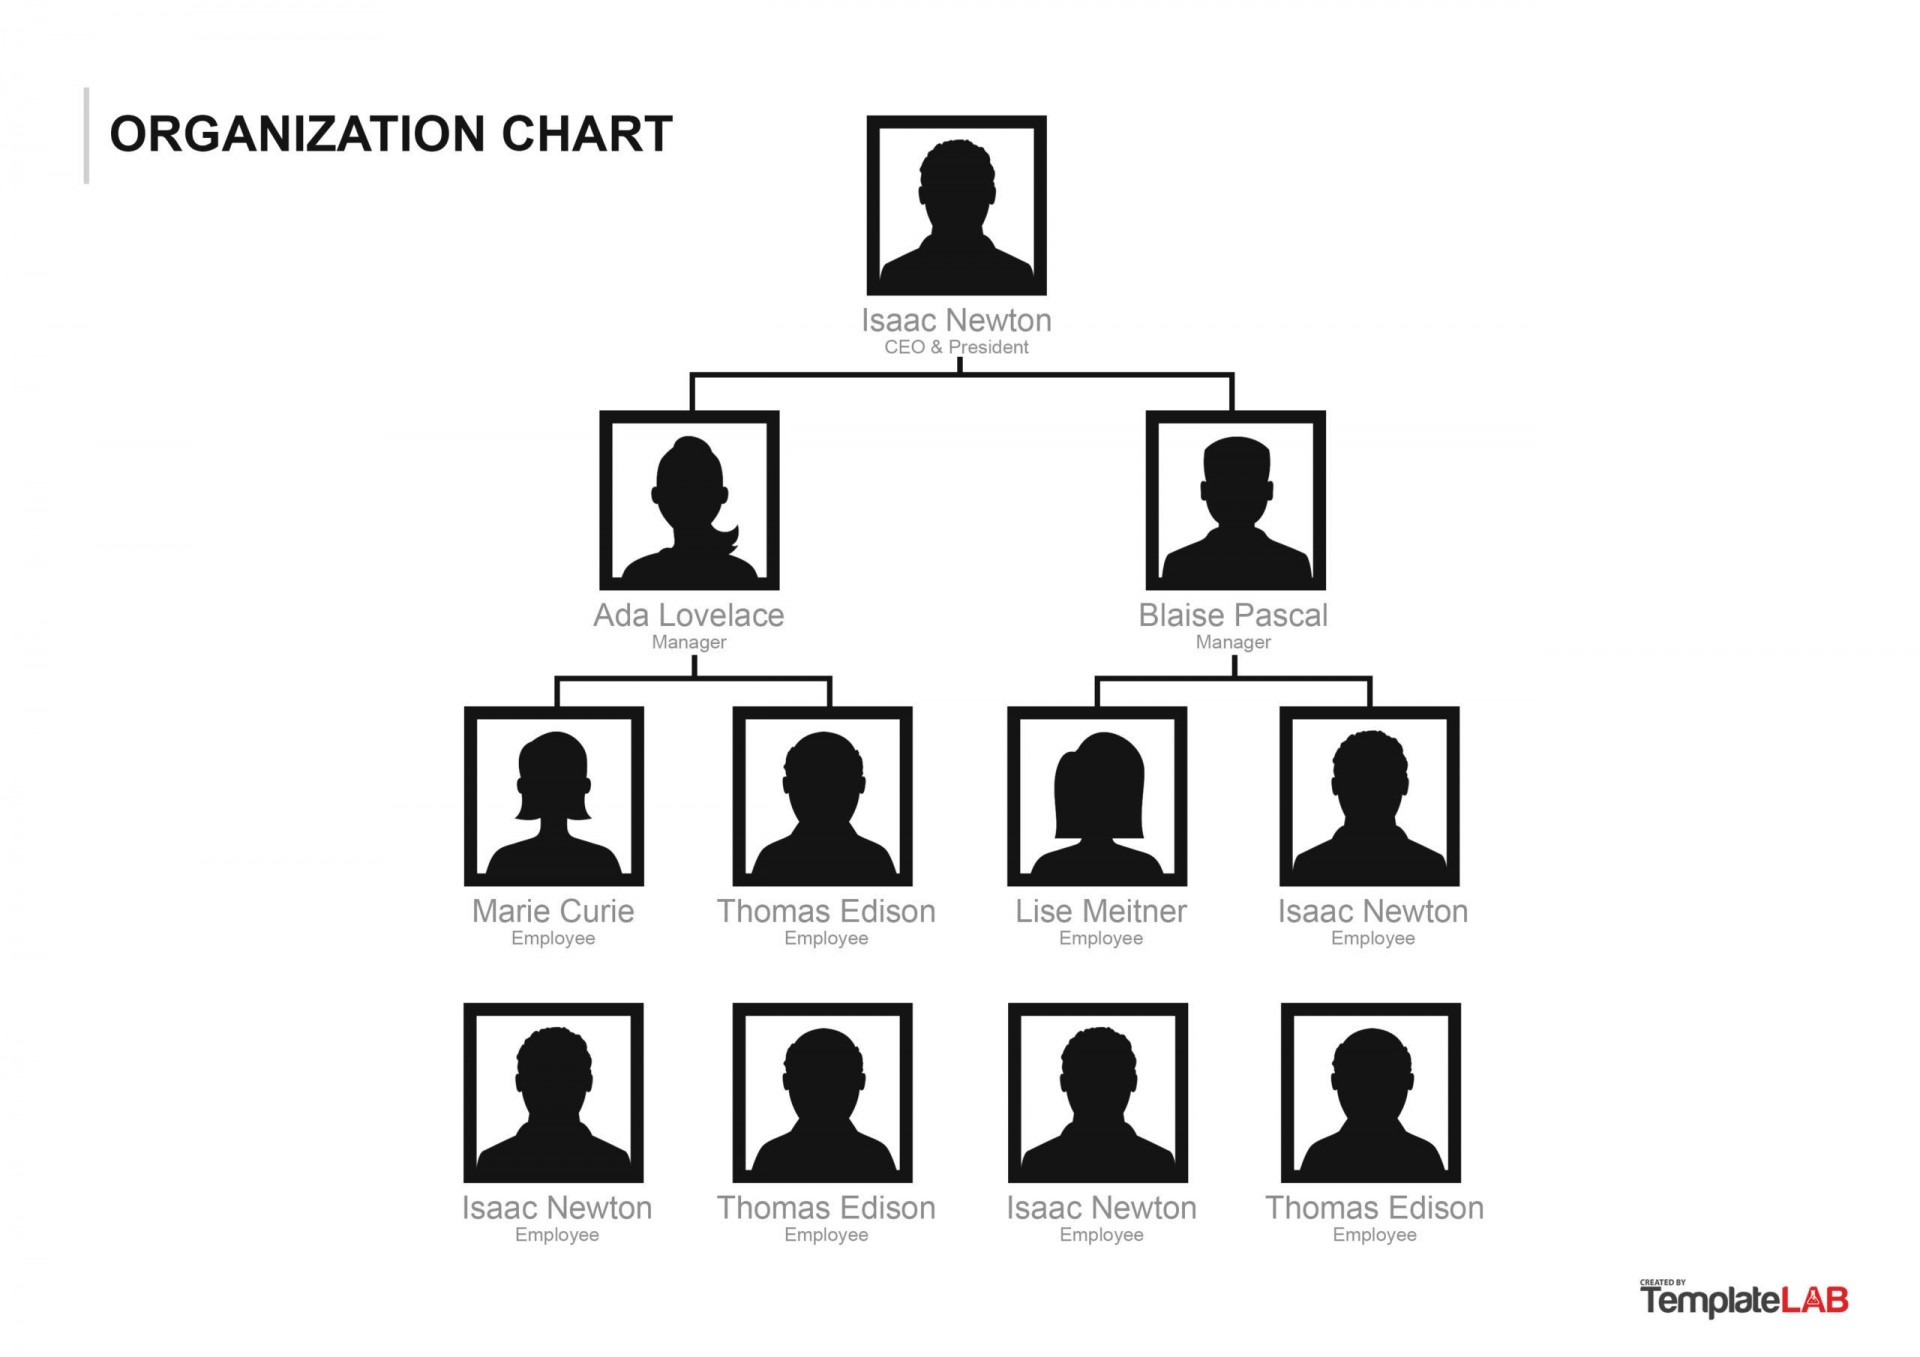 008 Staggering Organizational Chart Template Excel Download Free Image  Org1920